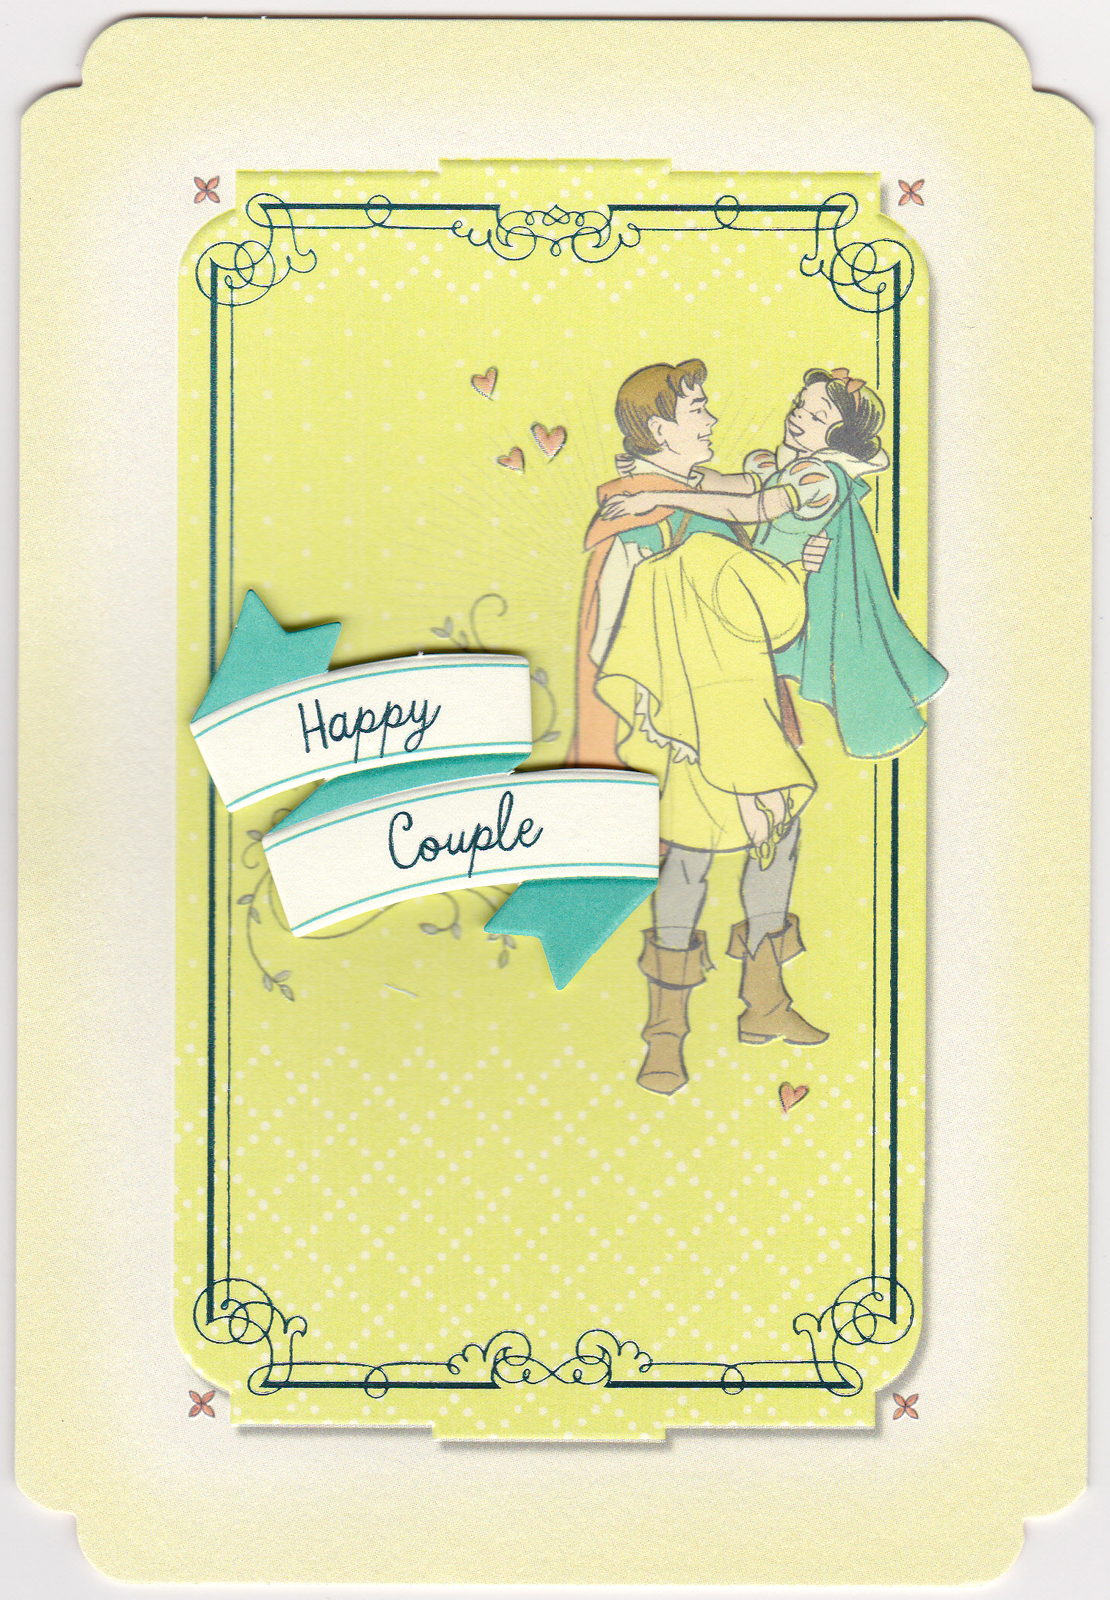 Filmic Light Snow White Archive 2013 Anniversary Greeting Card